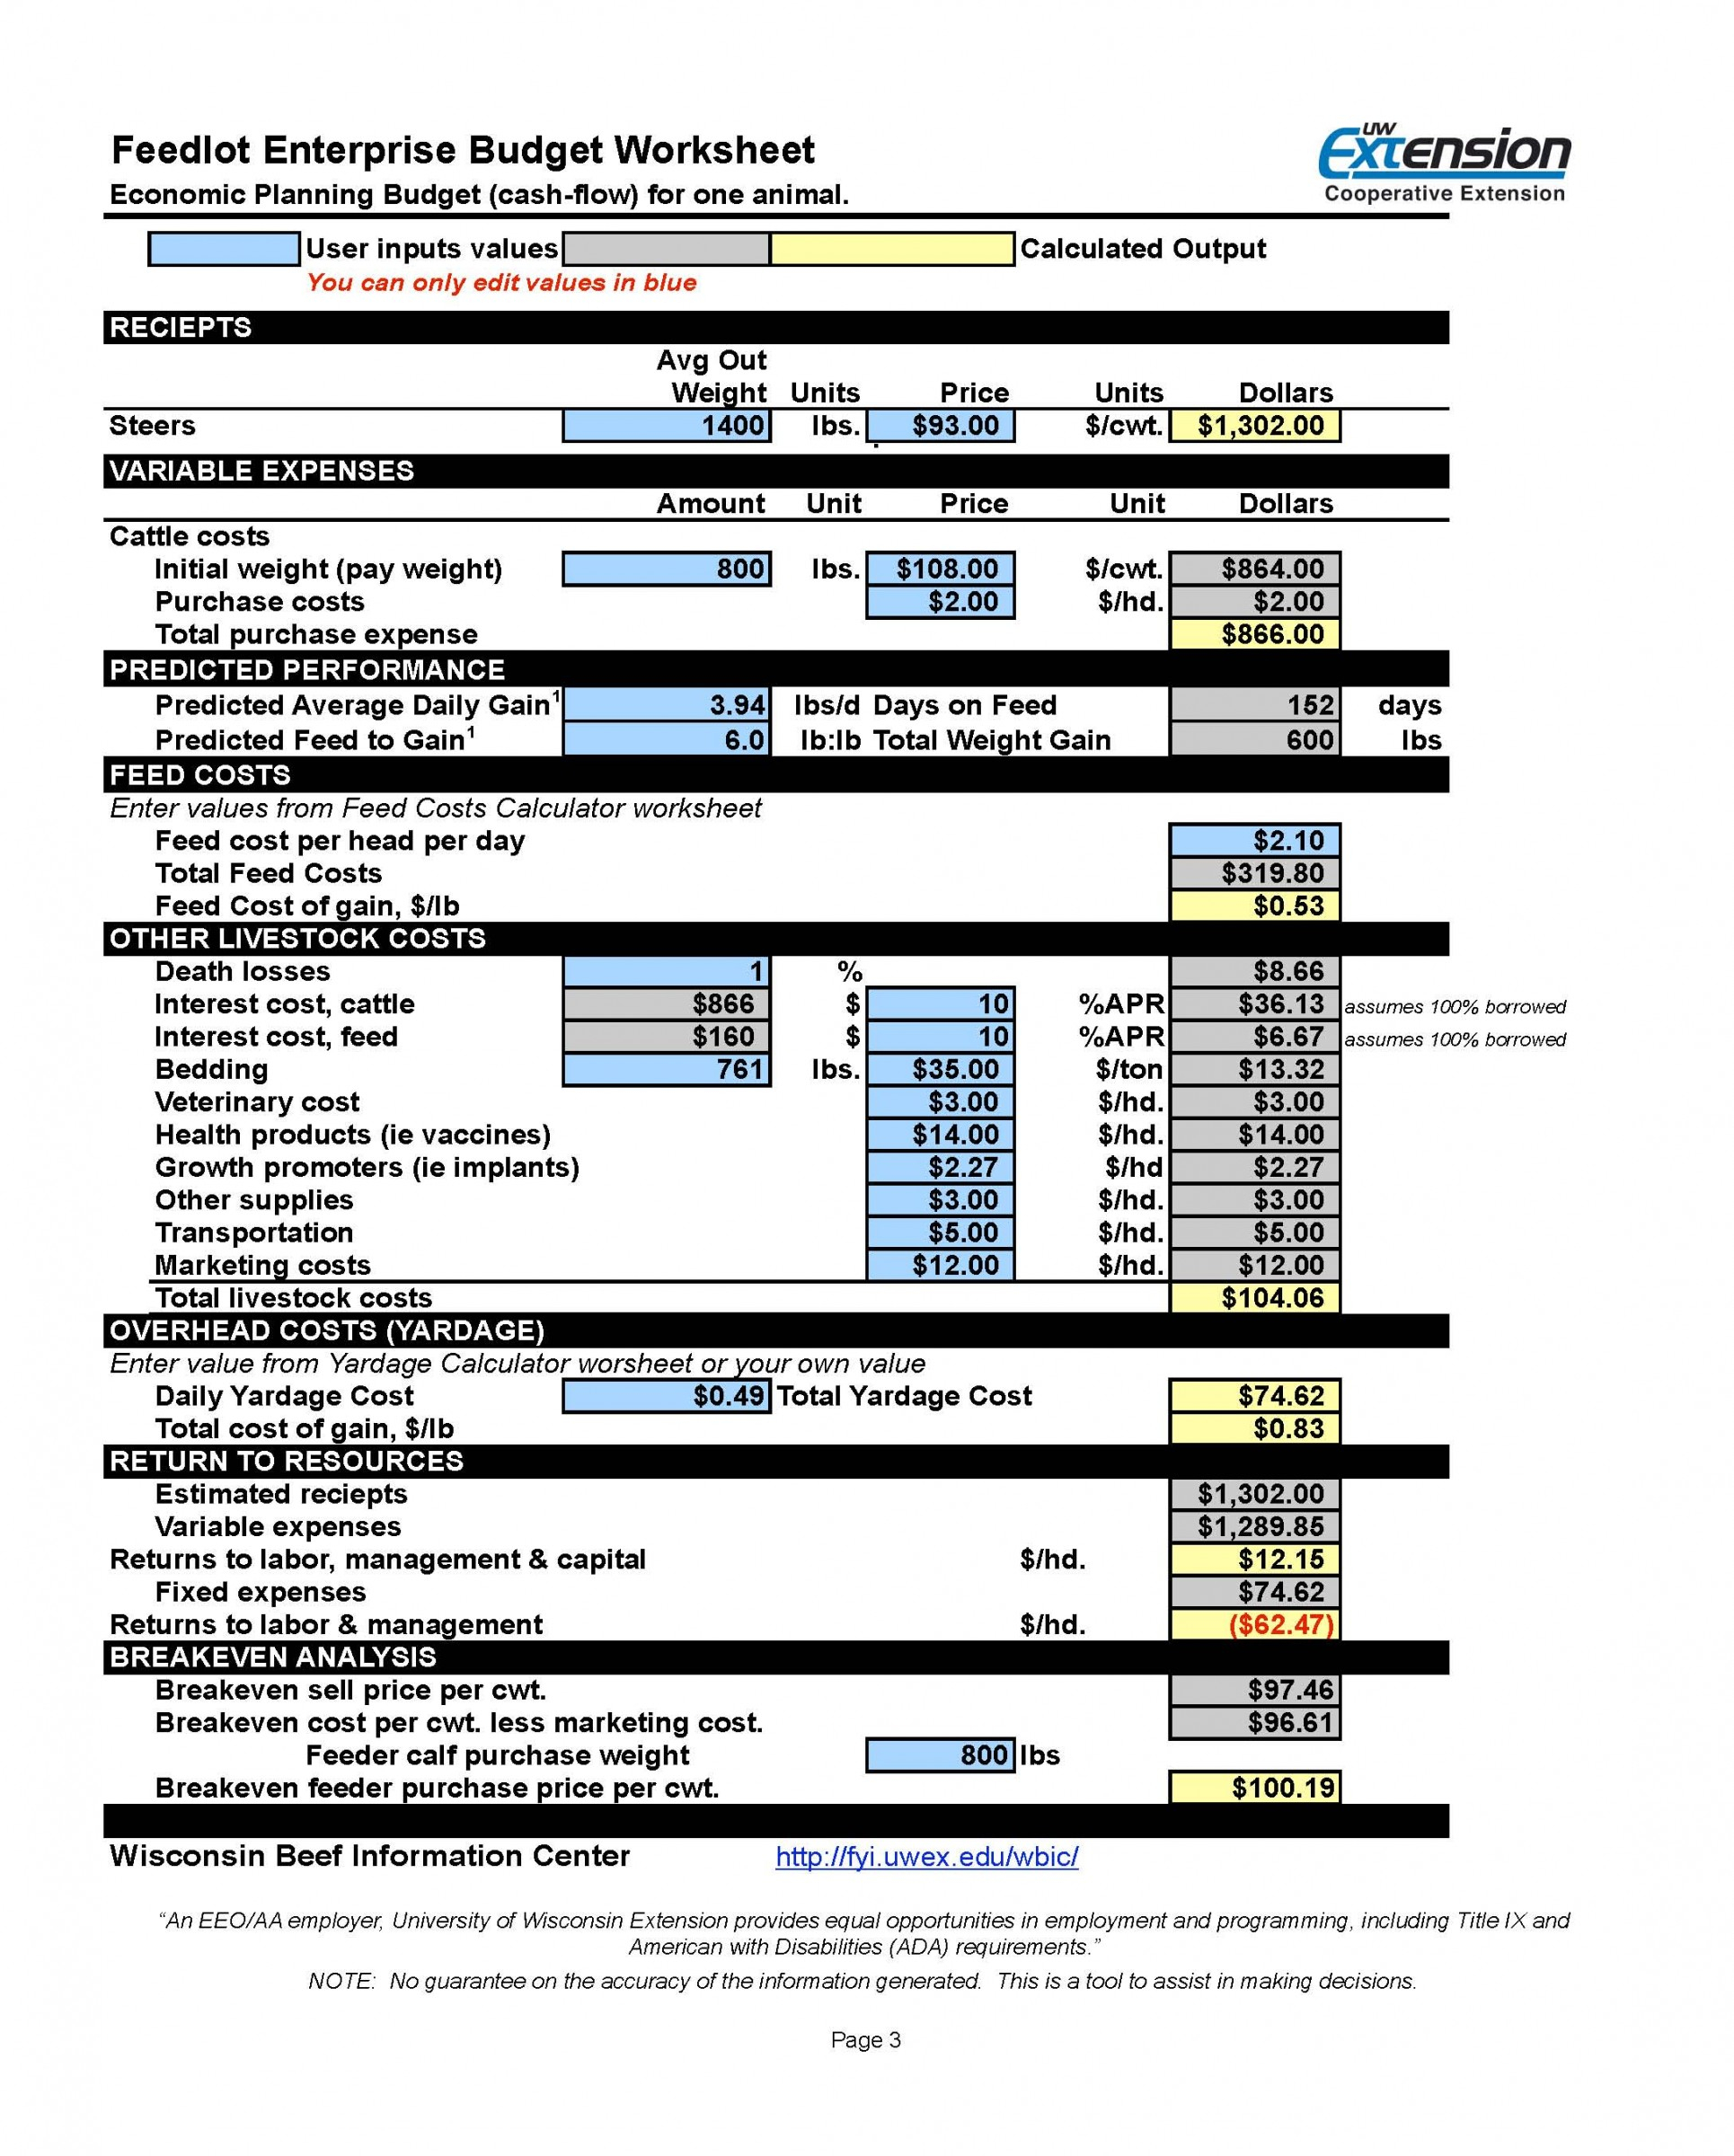 Cow Calf Budget Spreadsheet In Decisionmaking Tools For Feeding Cattle – Wi Beef Information Center